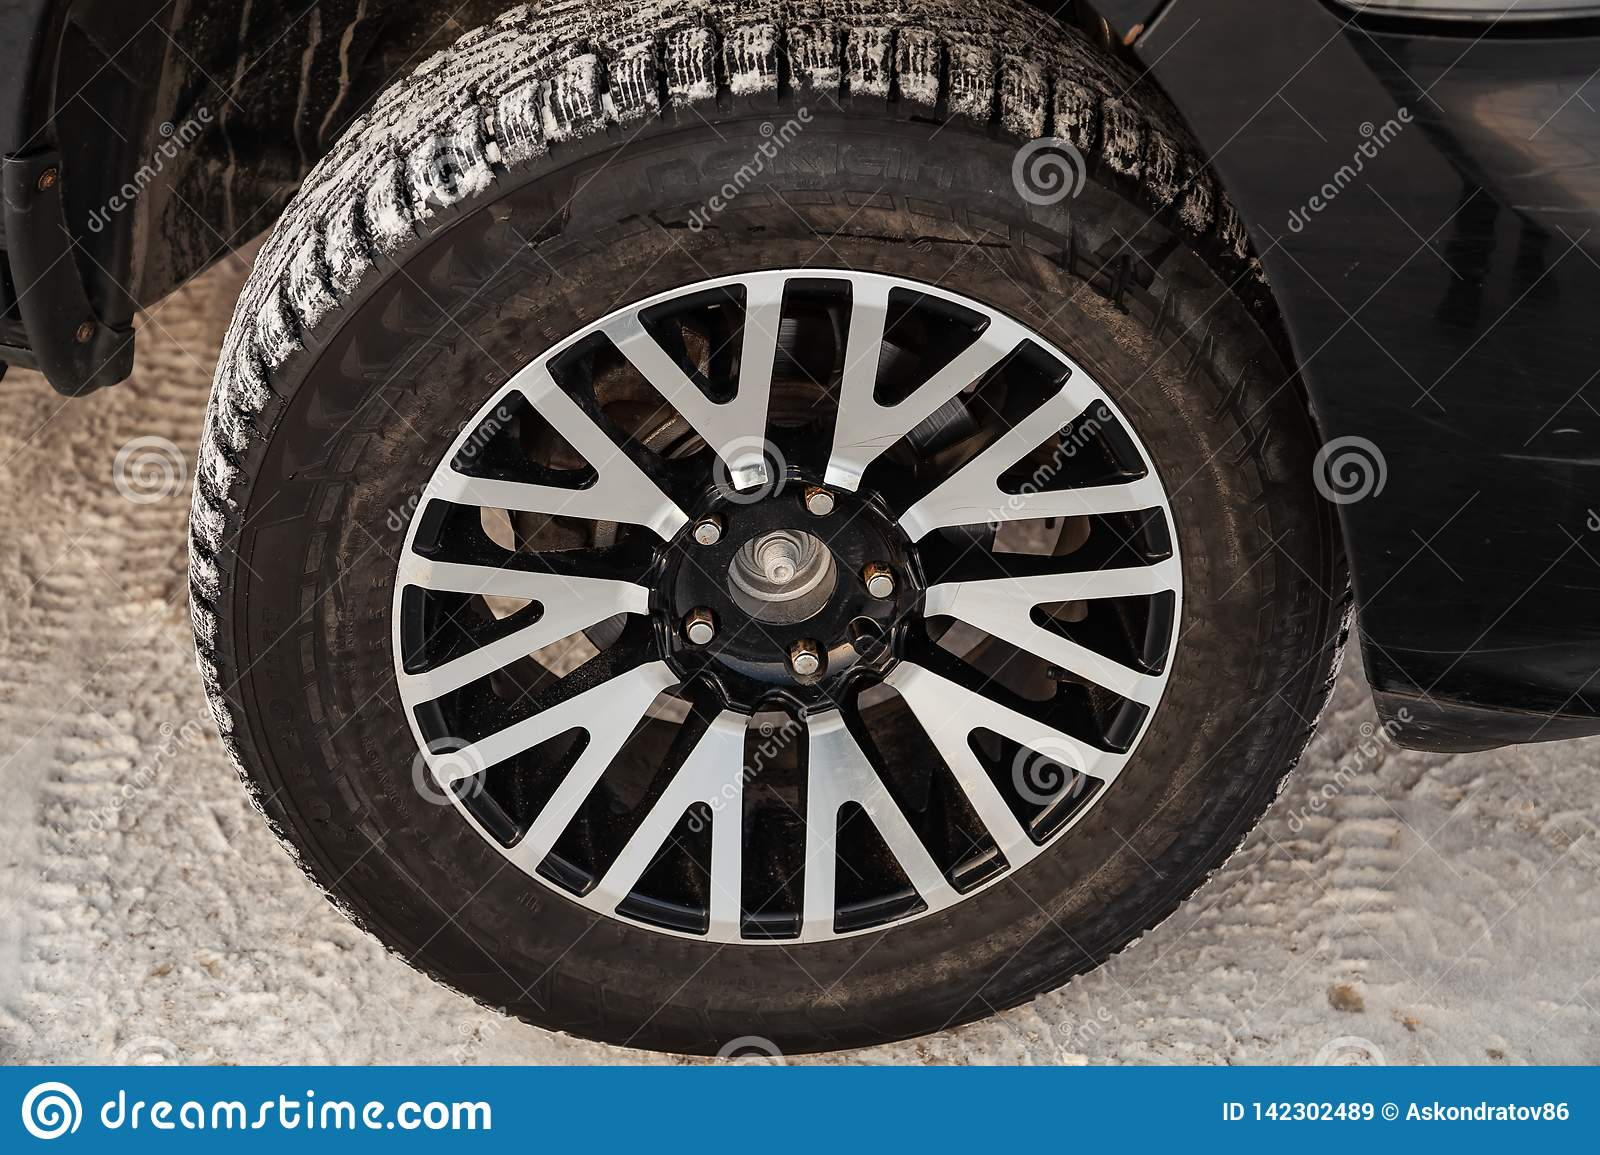 Black Dodge Ram with an engine of 5.7 liters front wheel view on the car parking with snow background